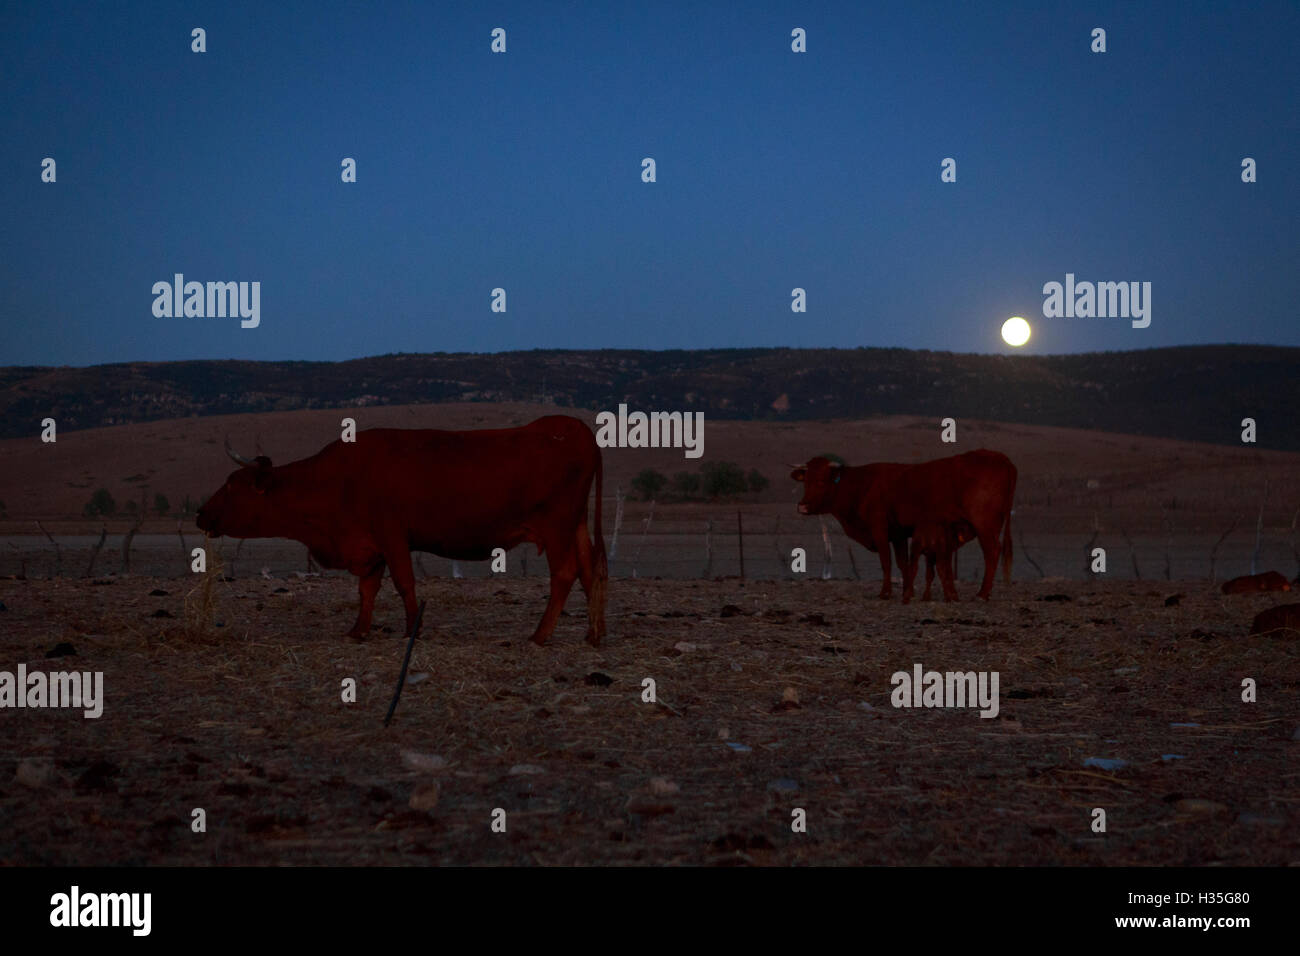 Andalusia, Spain. A general view of cows in the field with a full moon. Pako Mera - Stock Image